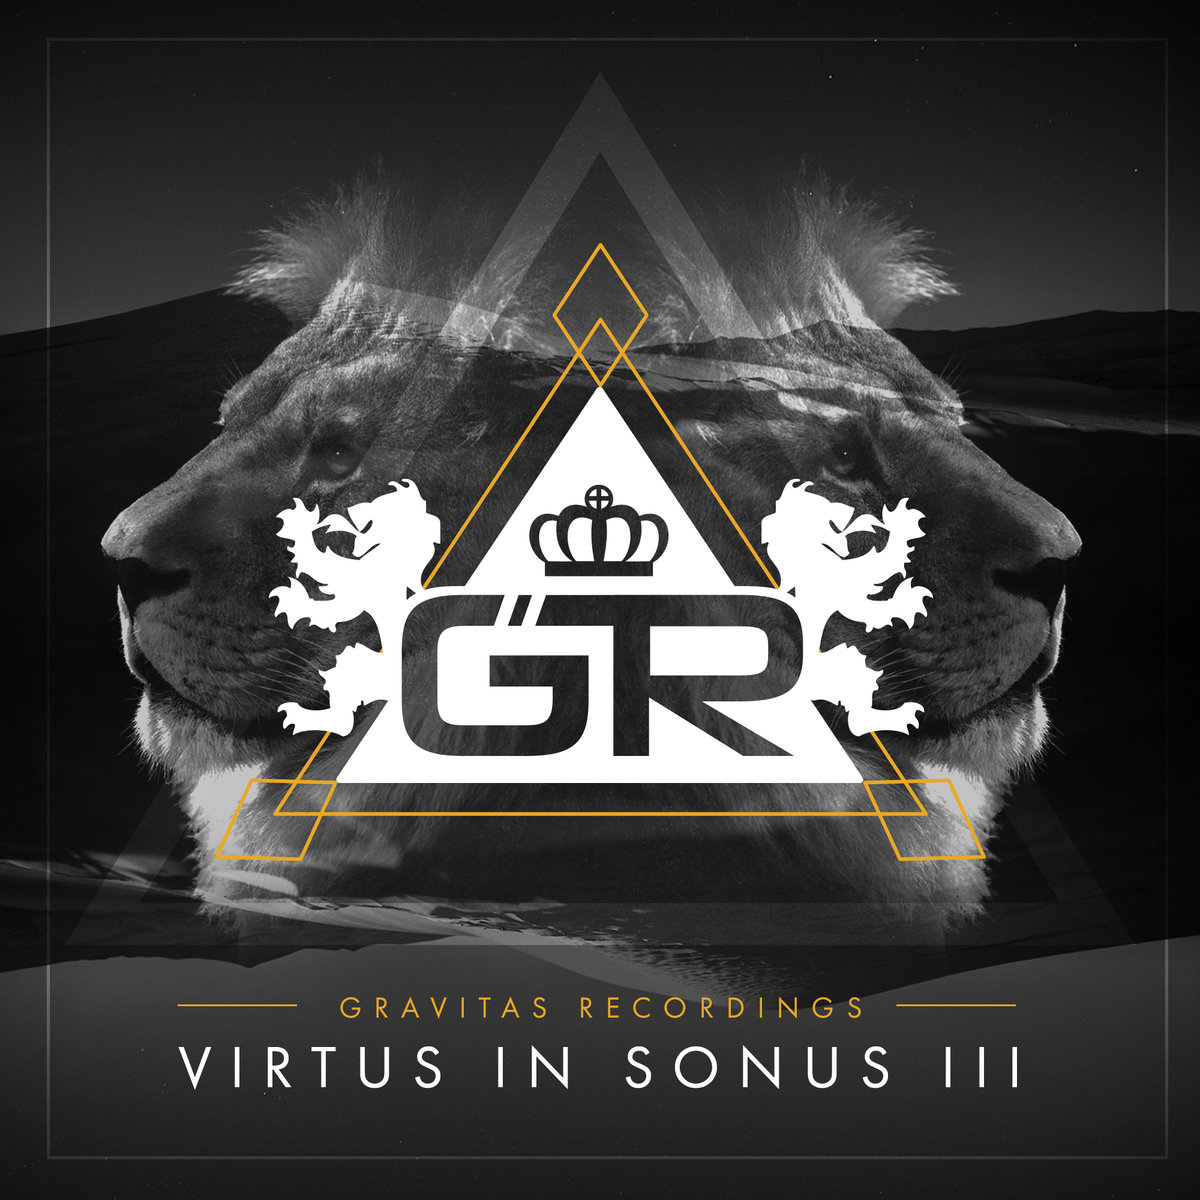 Of The Trees - Bad Acid @ 'Virtus In Sonus III' album (Austin)